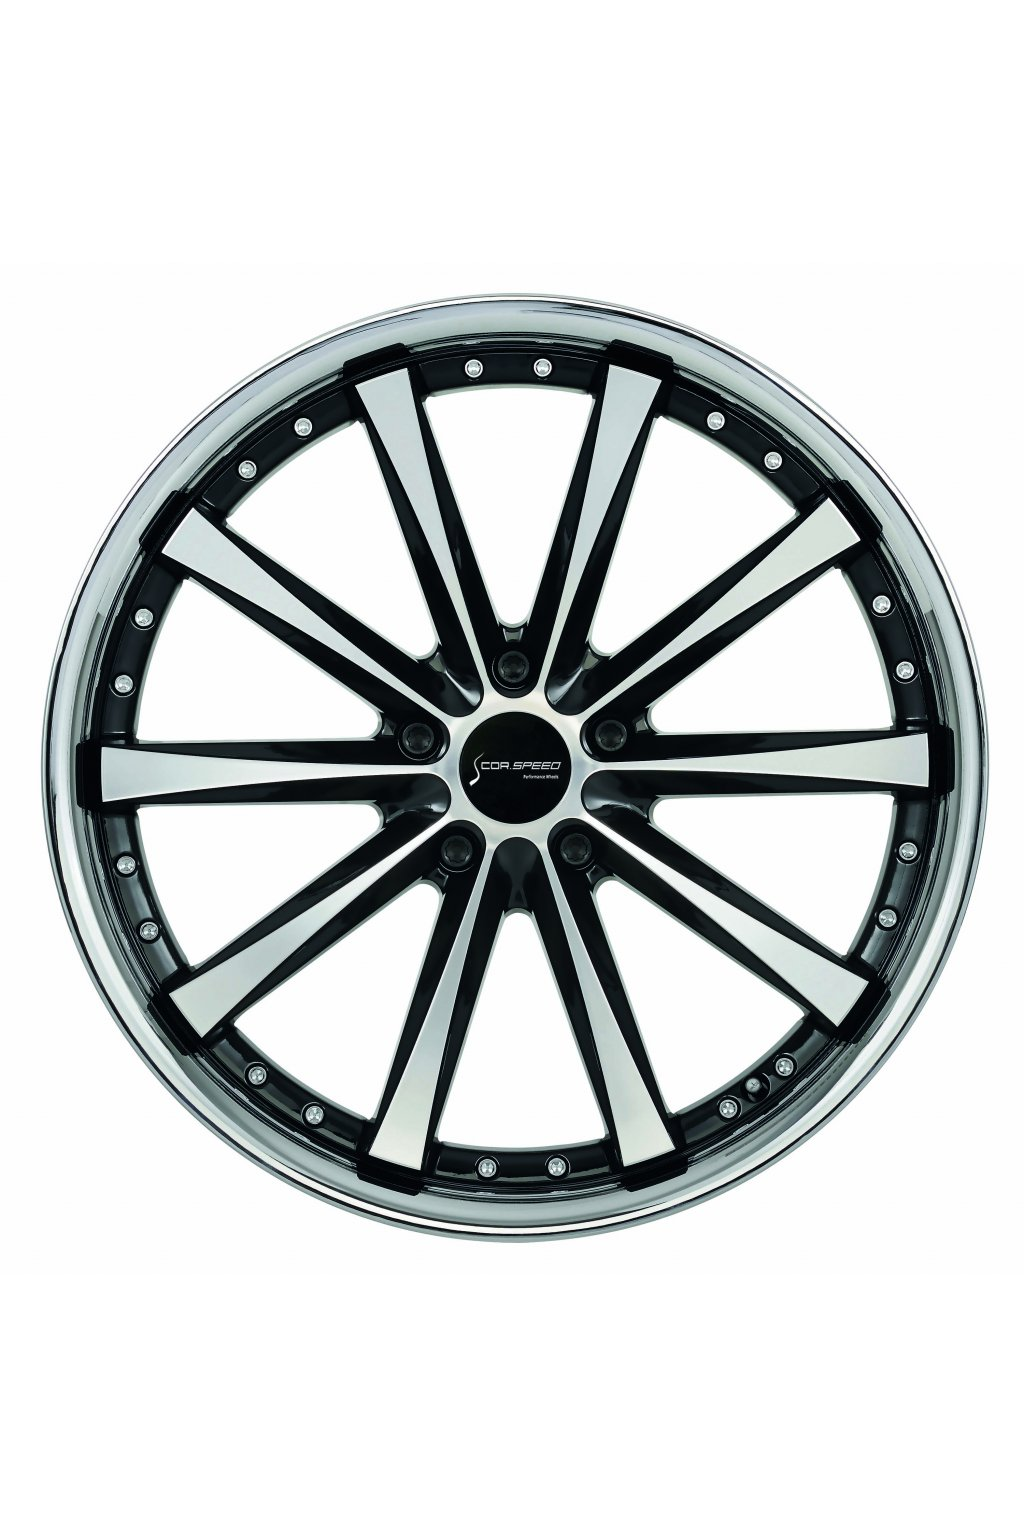 Disk CORSPEED ARROWS 8.0x18 / 5x112